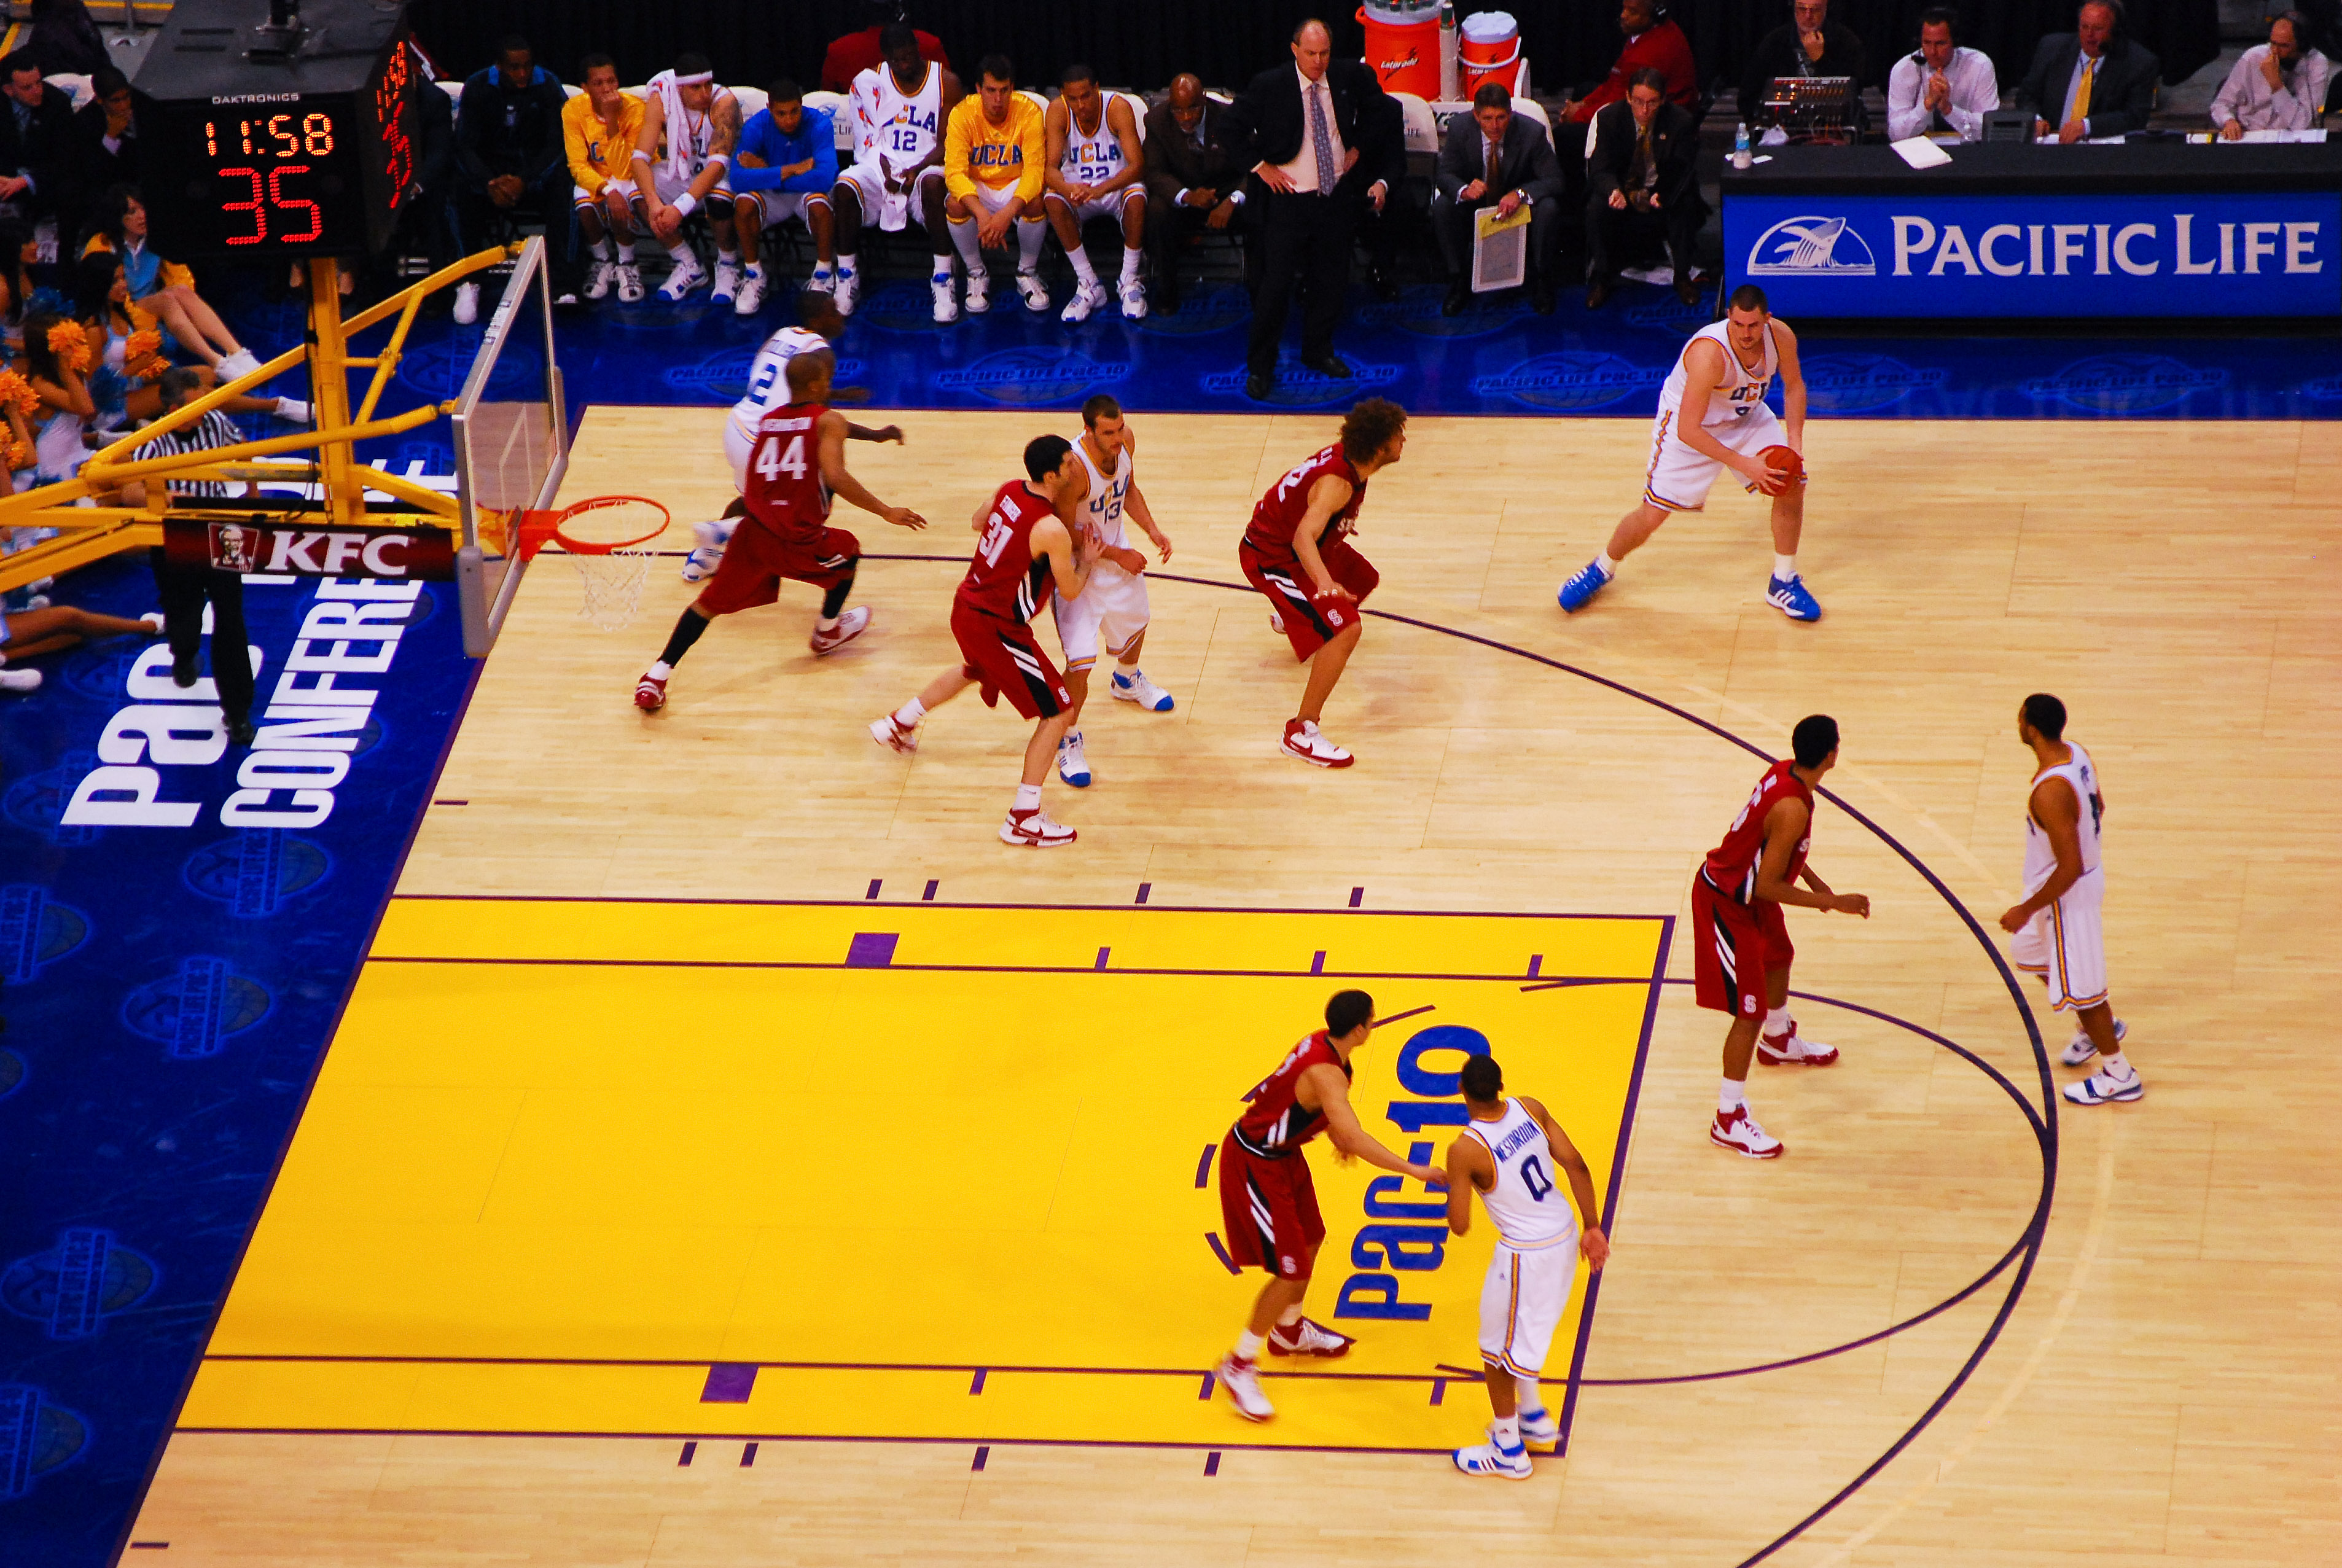 UCLA's_Kevin_Love_on_the_perimeter_at_Pac_10_Championship_game_against_Stanford_at_Staples_Center,_Los_Angeles,_2008